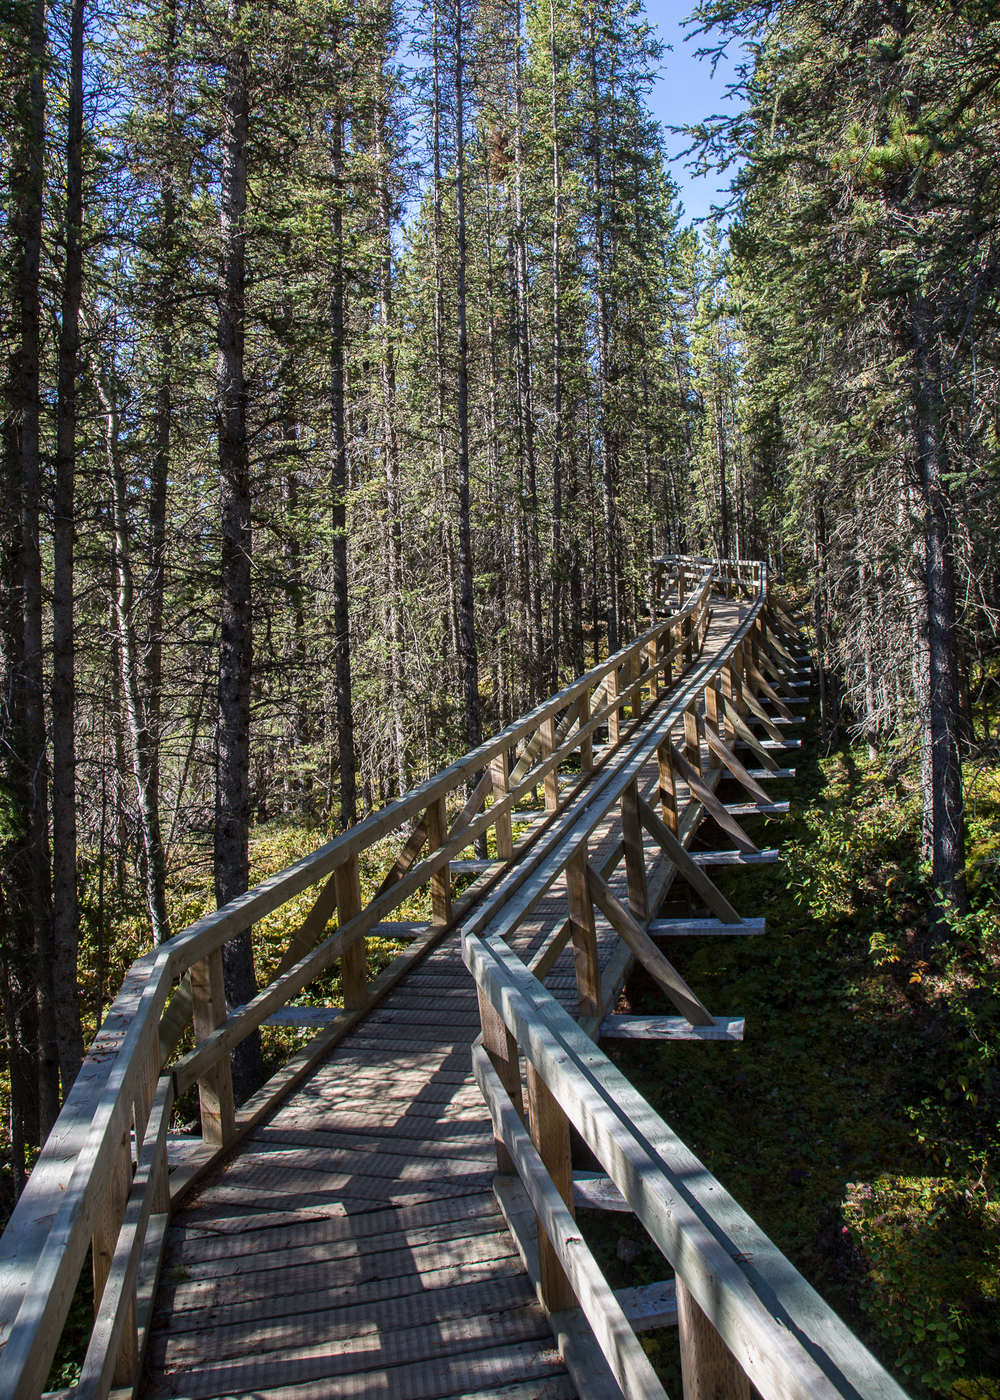 Rancheria Falls boardwalk